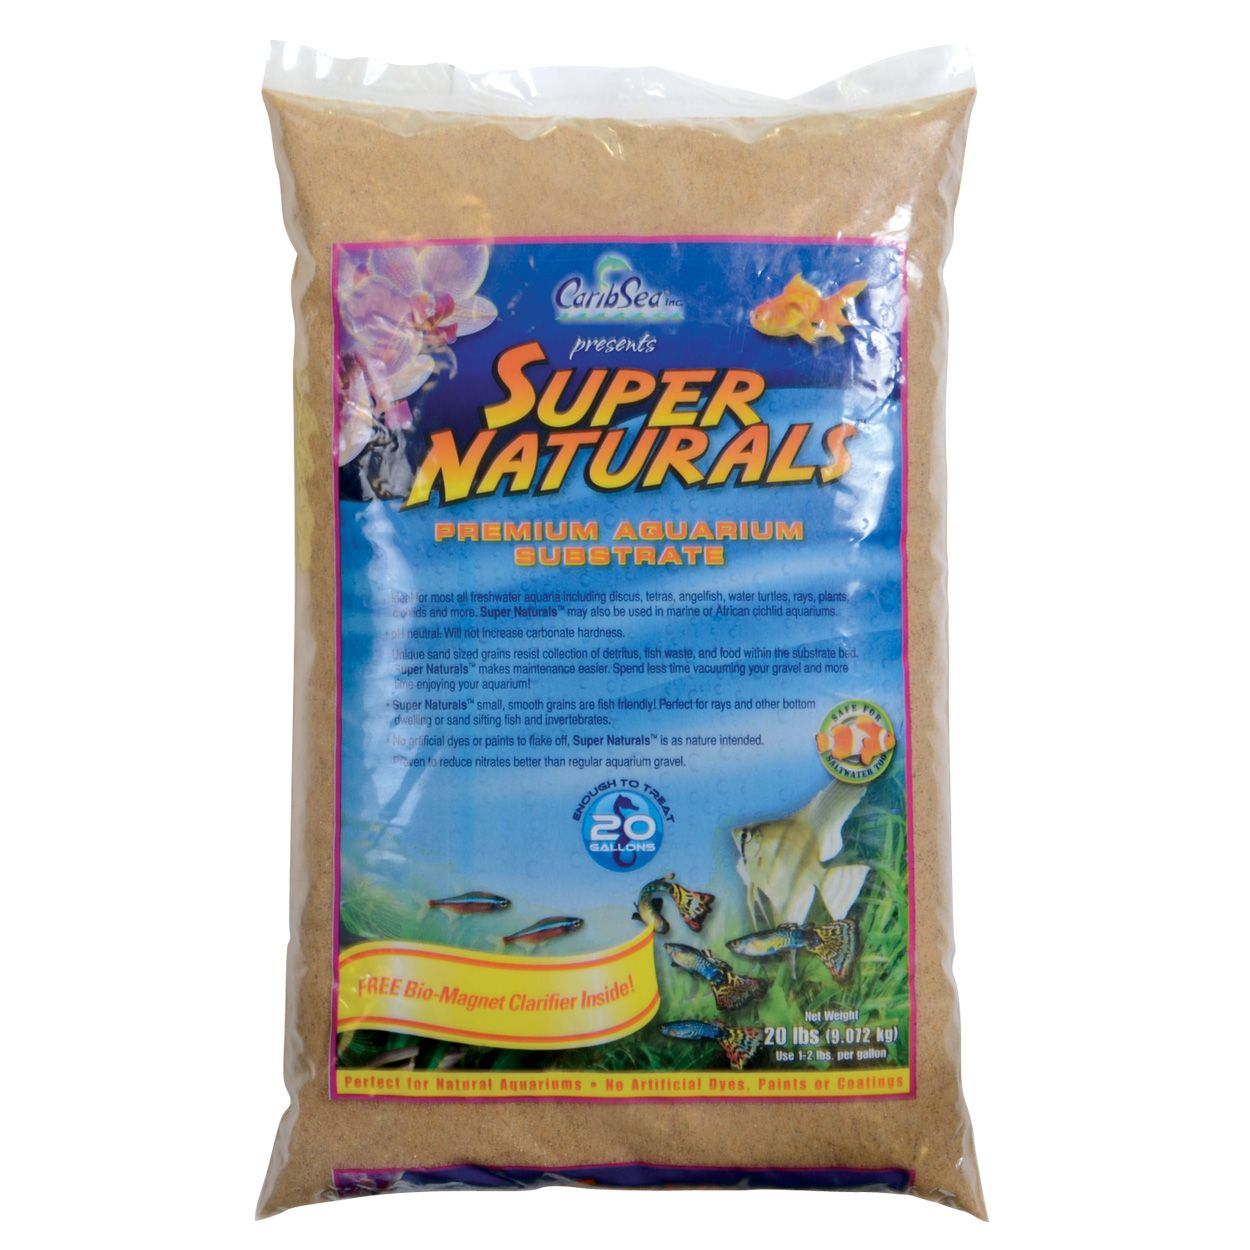 Carib Sea Super Naturals Sunset Gold - 20 lb